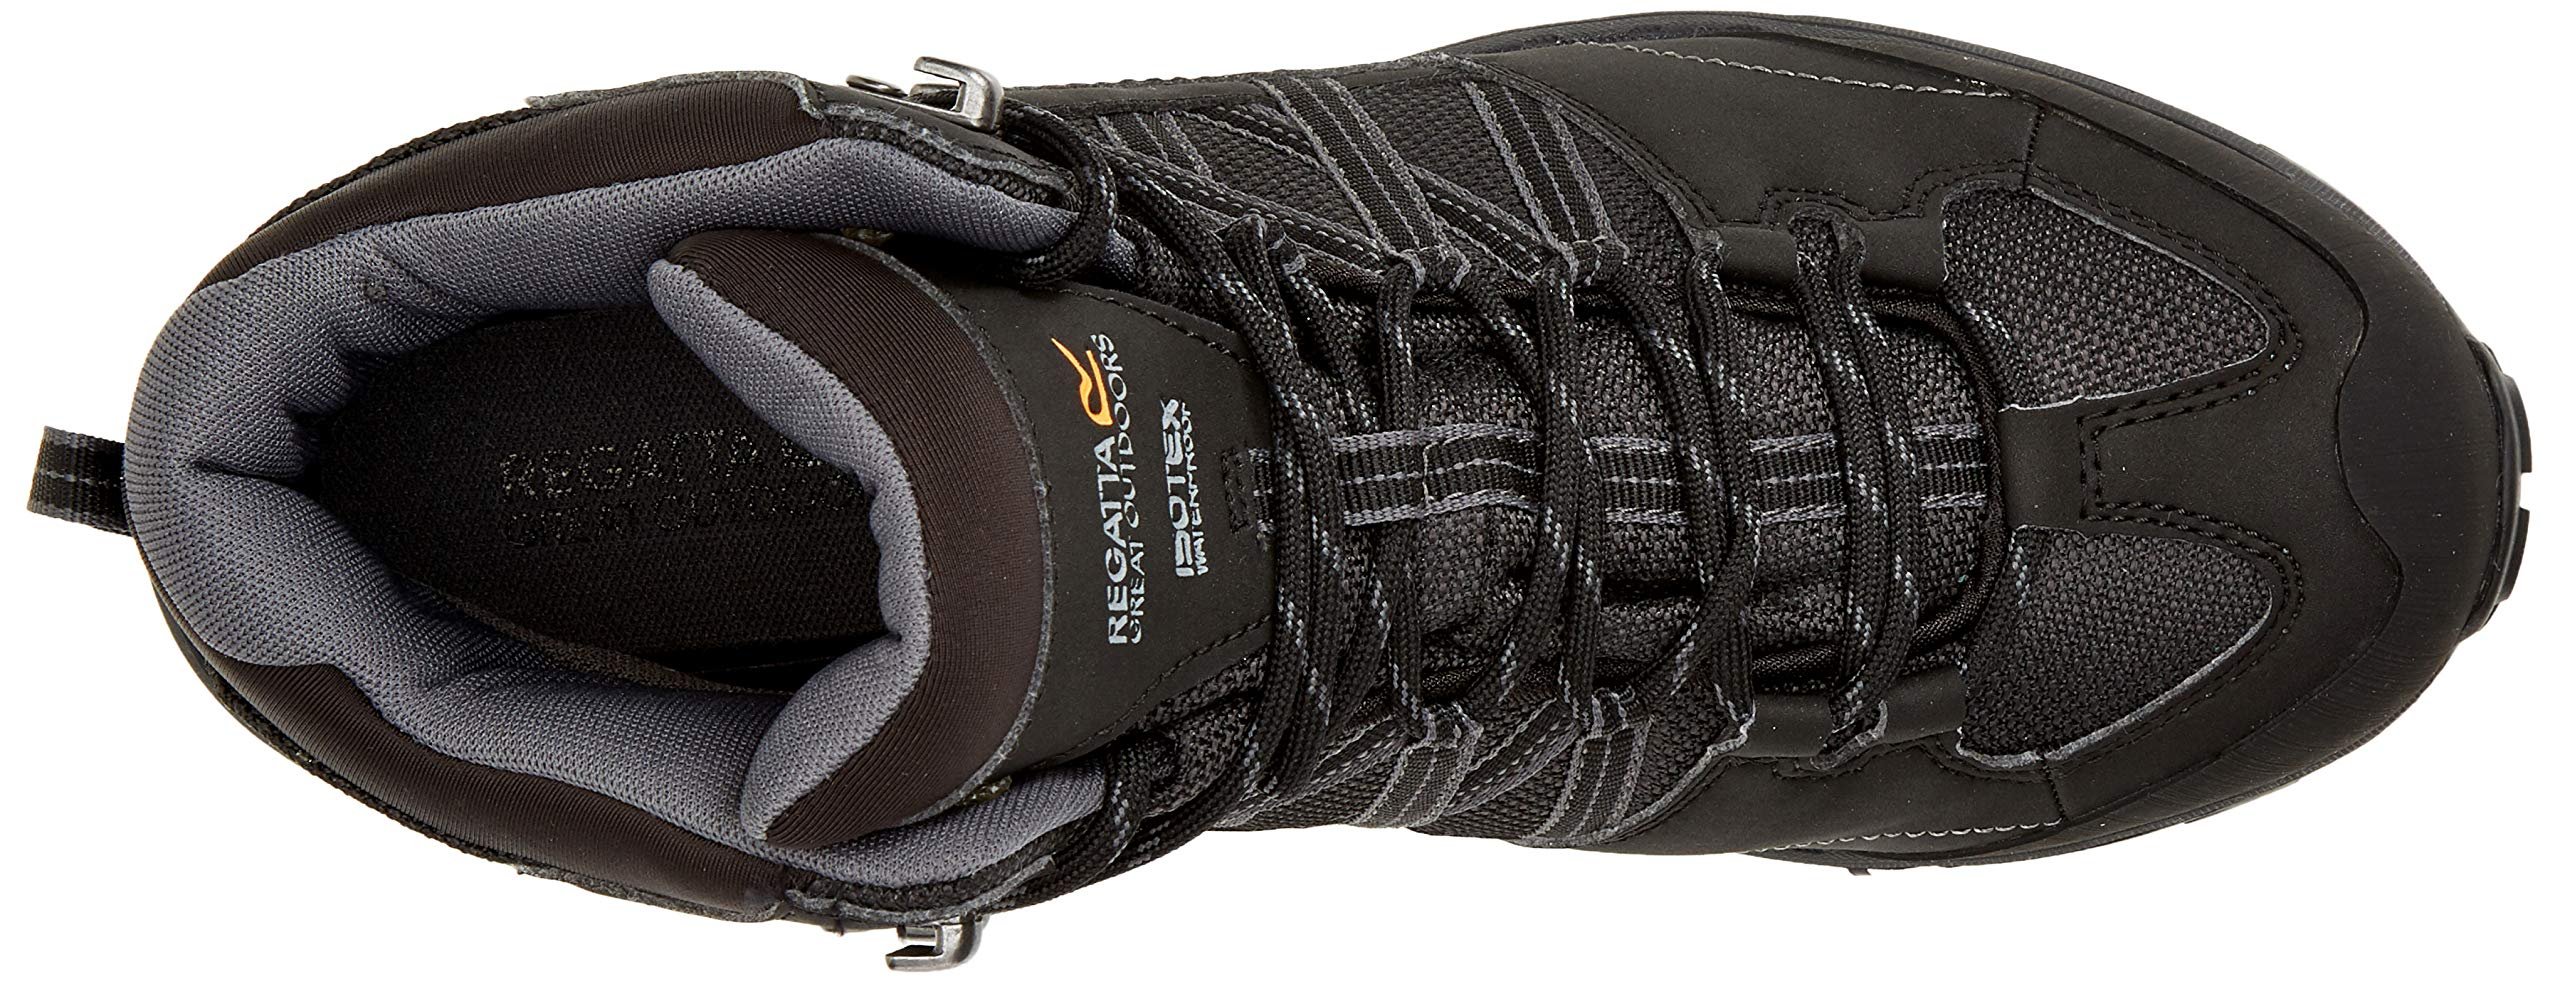 7097b535e2d Regatta Men's Samaris Mid Ii High Rise Hiking Boots - UKsportsOutdoors